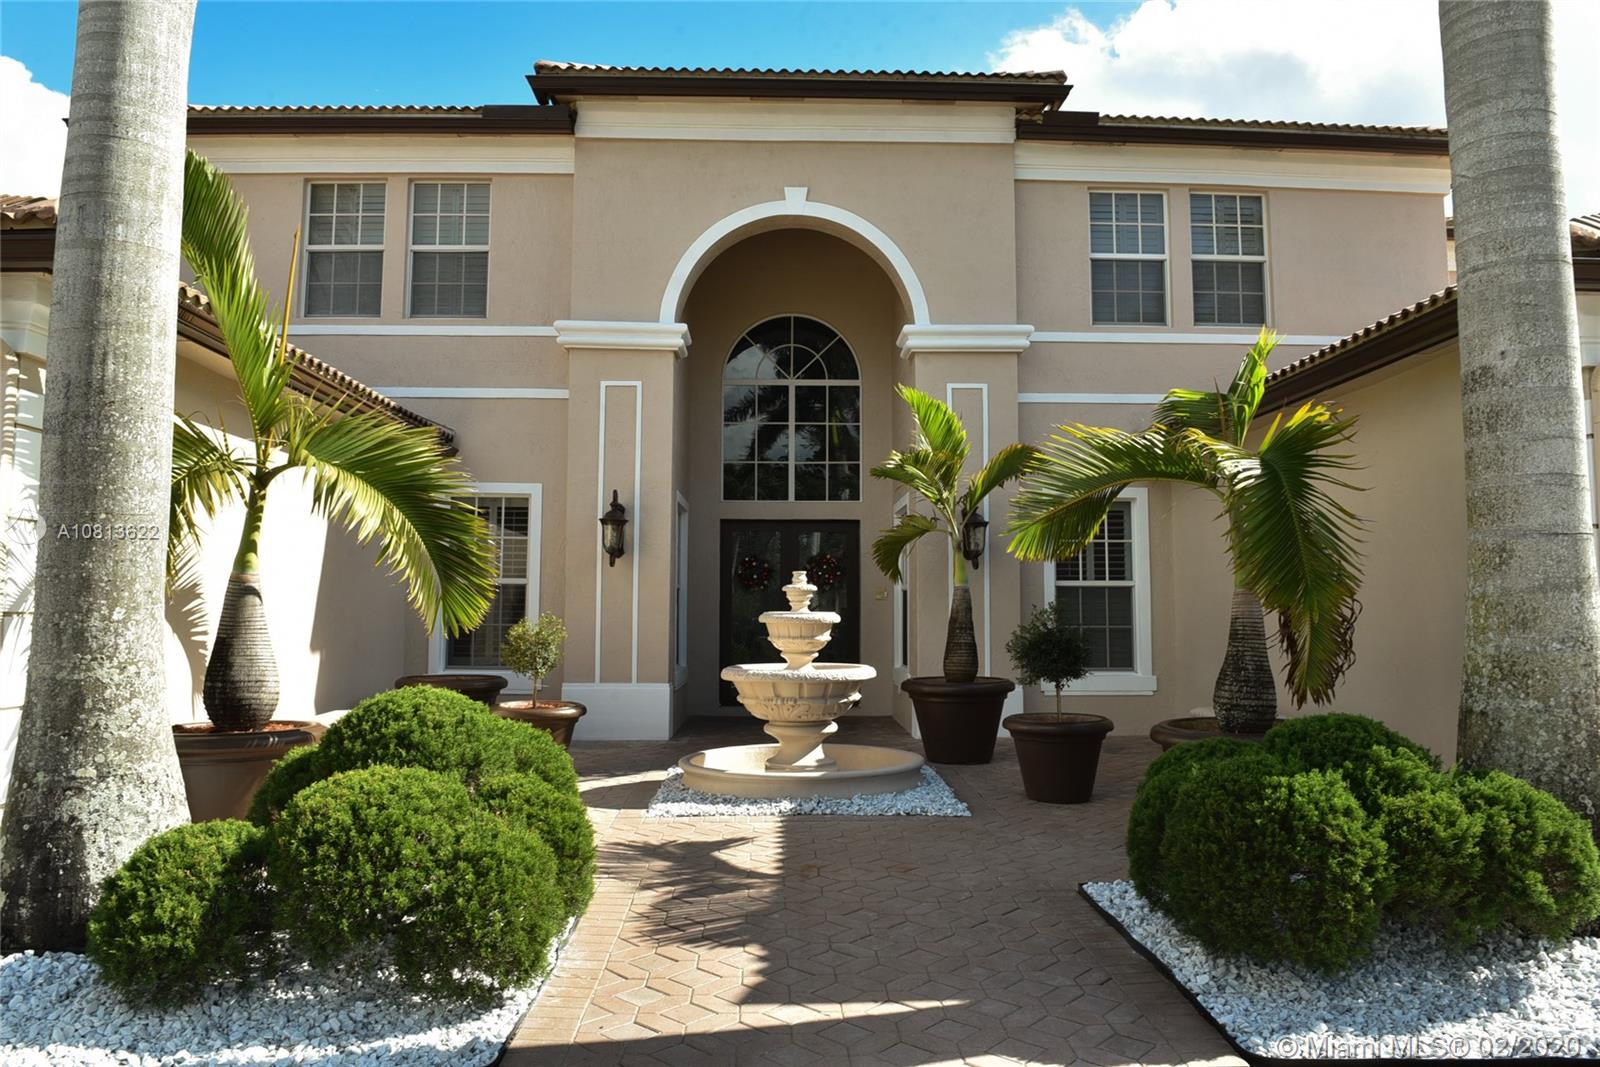 "A STUNNING 2 STORY HOME IN GOLF GATED COMMUNITY @ DESIRABLE DBL GATED ""THE ENCLAVE"" AT GRAND PALMS GOLF & COUNTRY CLUB. HOME WITH 5 bed, 5.5 bath, PLUS FAM & BILLIARD ROOMS.CIRCULAR DRIVEWAY,